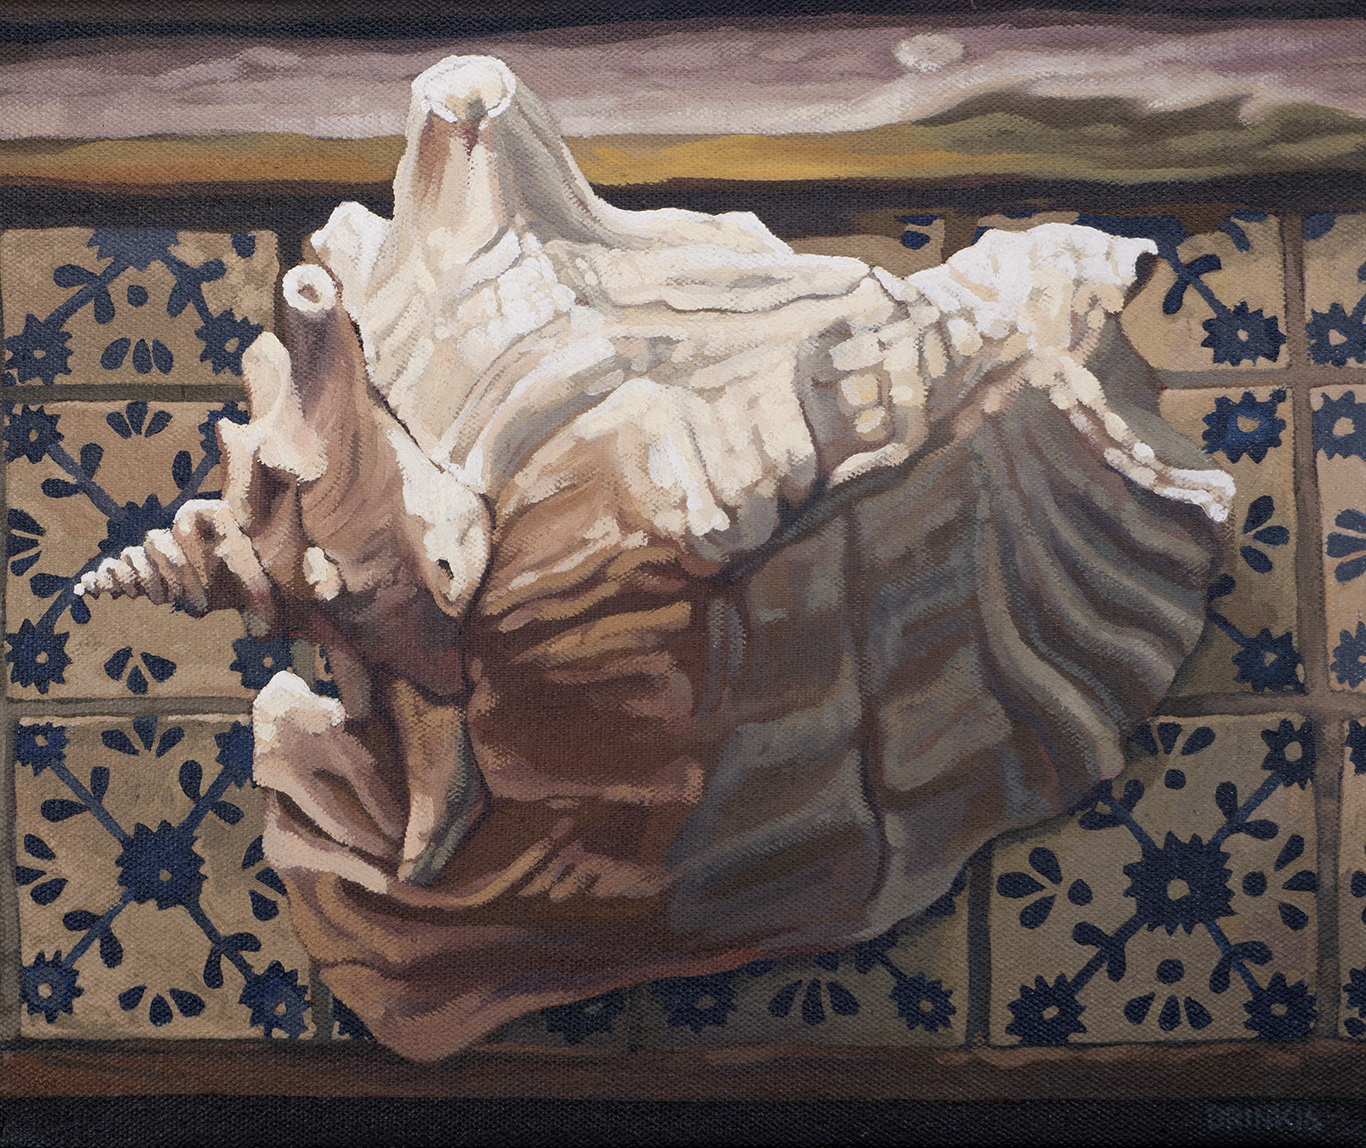 Conch On The Sill, 10 x 12 in, oil on canvas, 2016